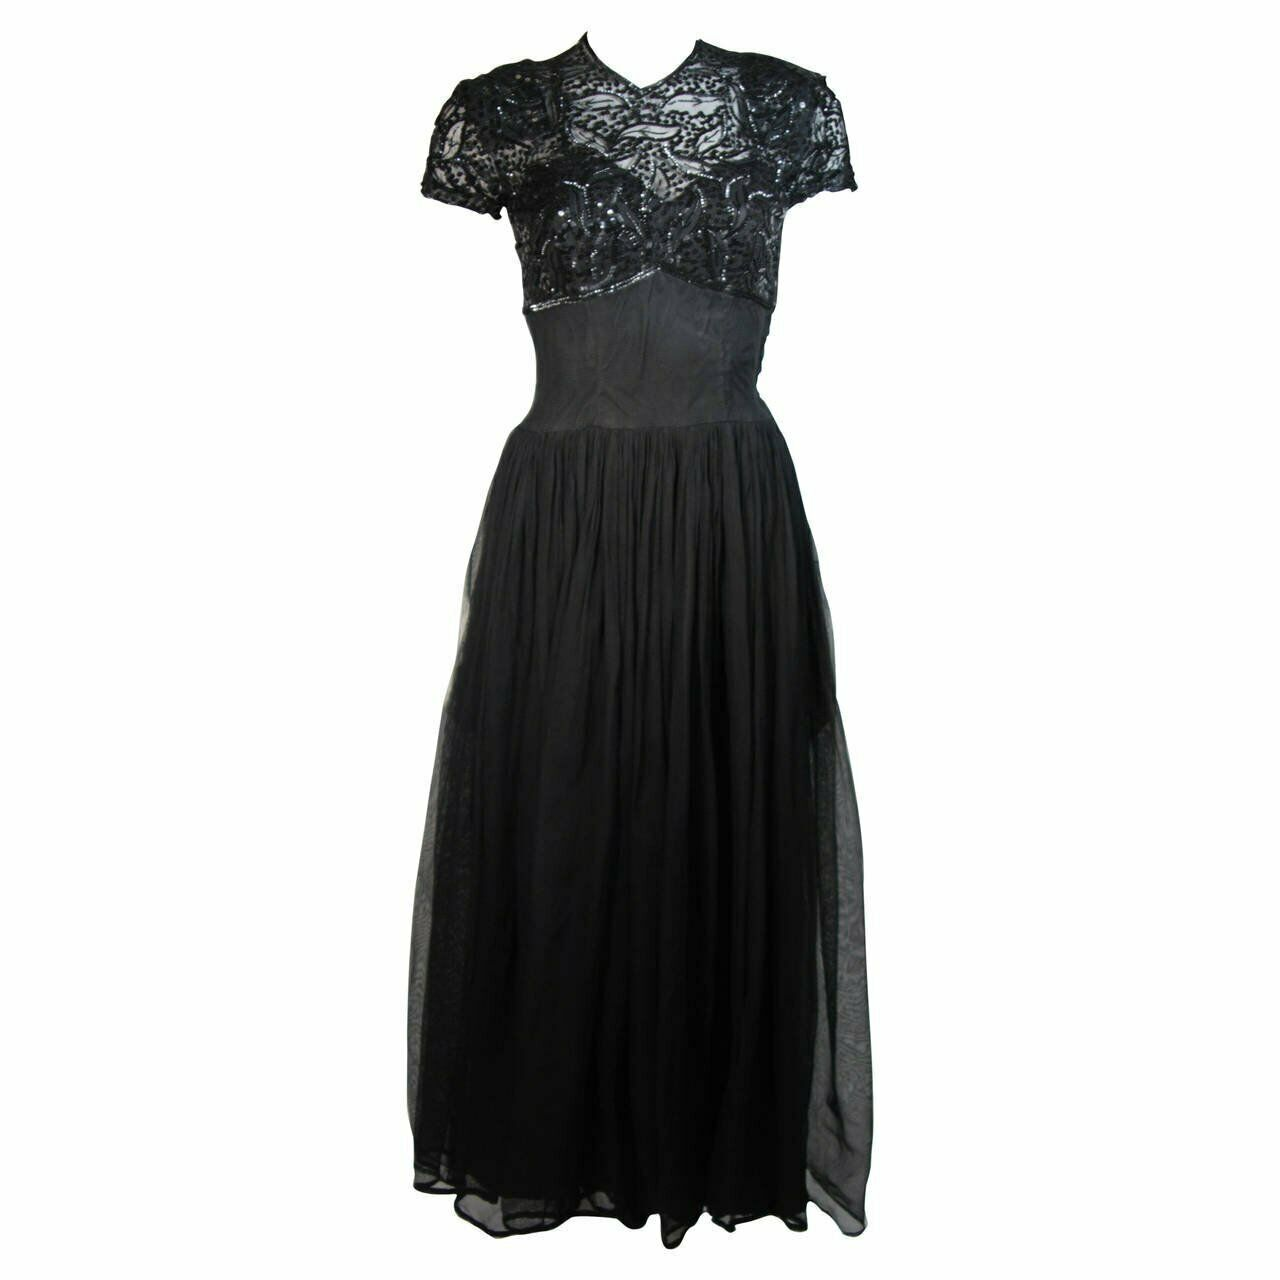 CEIL CHAPMAN Attributed Black Gown Size Small - image 1